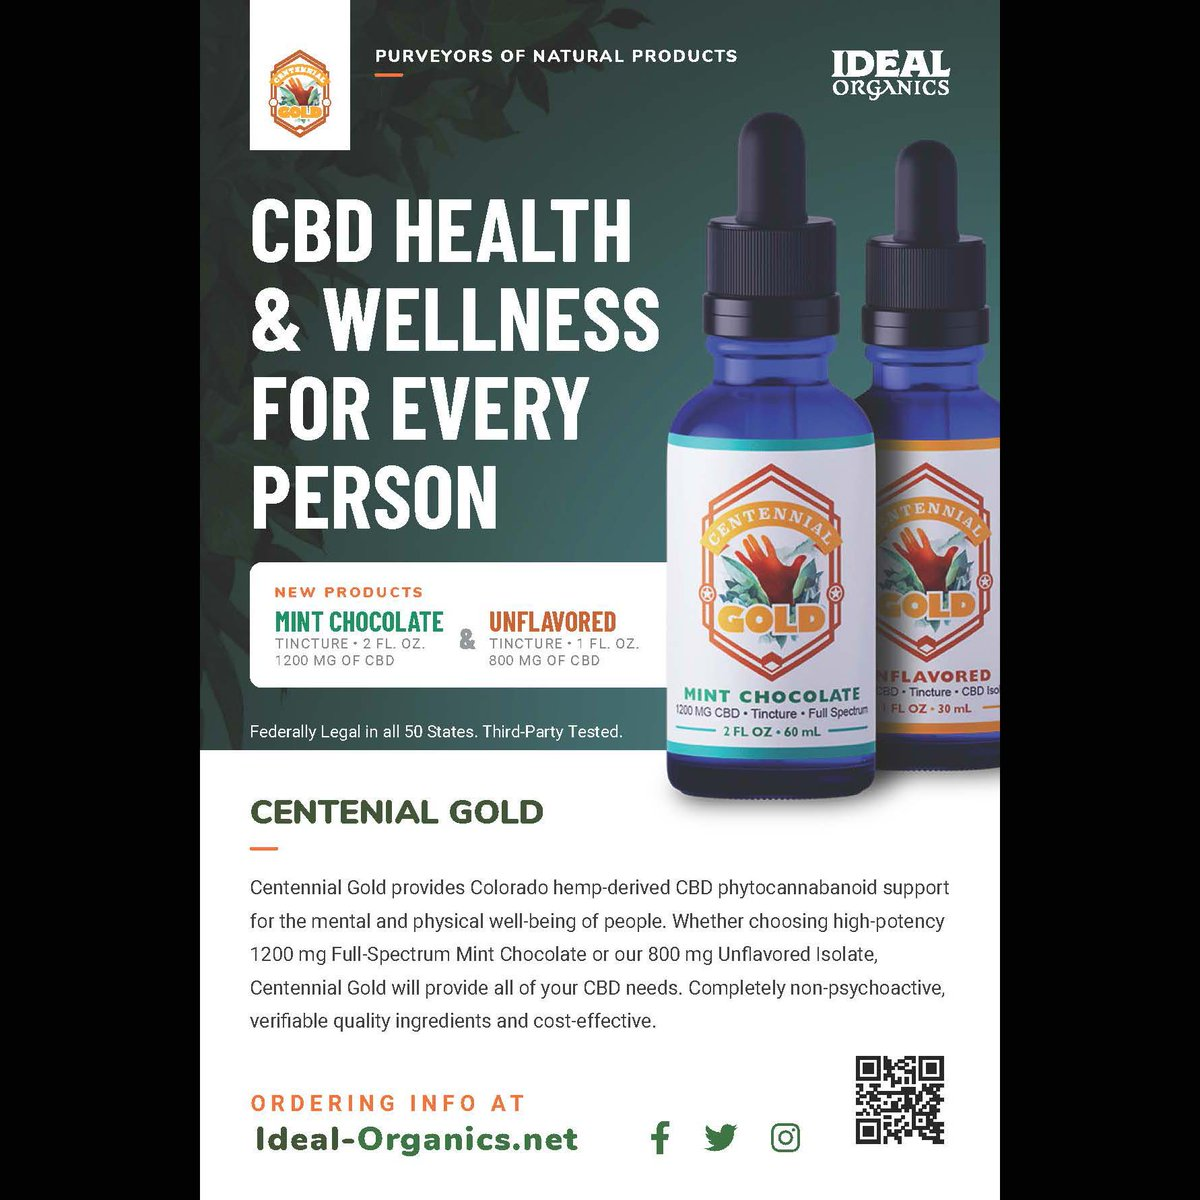 "High quality, non-psychoactive, potent CBD for an affordable price. All of our products are made using 100% USDA registered Colorado Hemp. Visit http://www.Ideal-Organics.net  for information and ordering. Enter code ""comicbook"" at checkout for a promotional 10% off until June 30th!pic.twitter.com/uniij2I356"